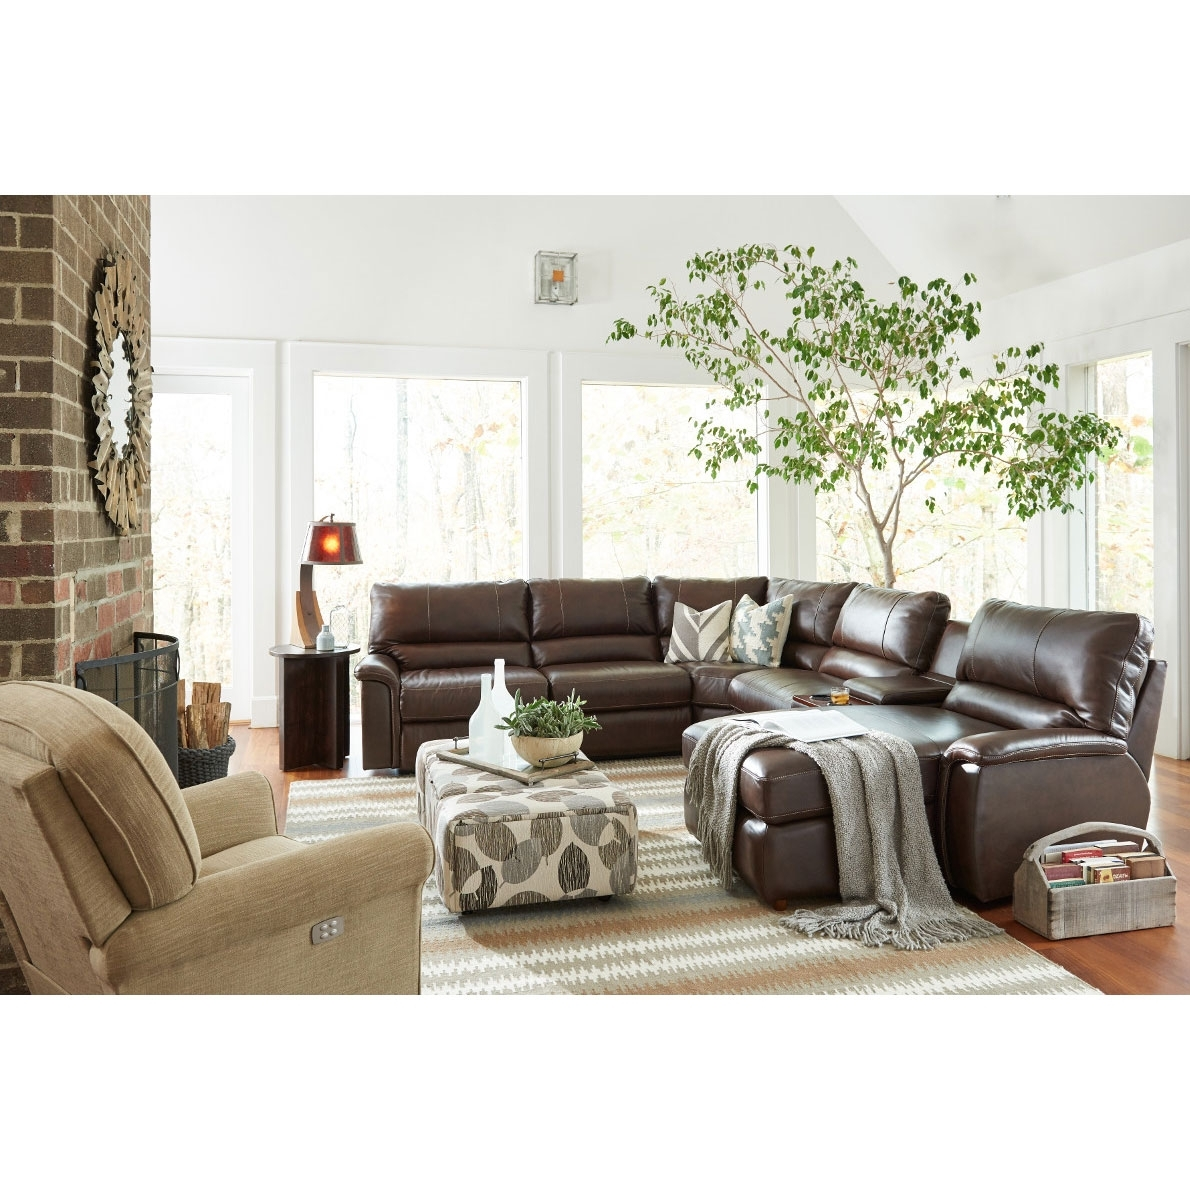 Aspen Sectional Regarding Aspen 2 Piece Sectionals With Laf Chaise (View 15 of 25)